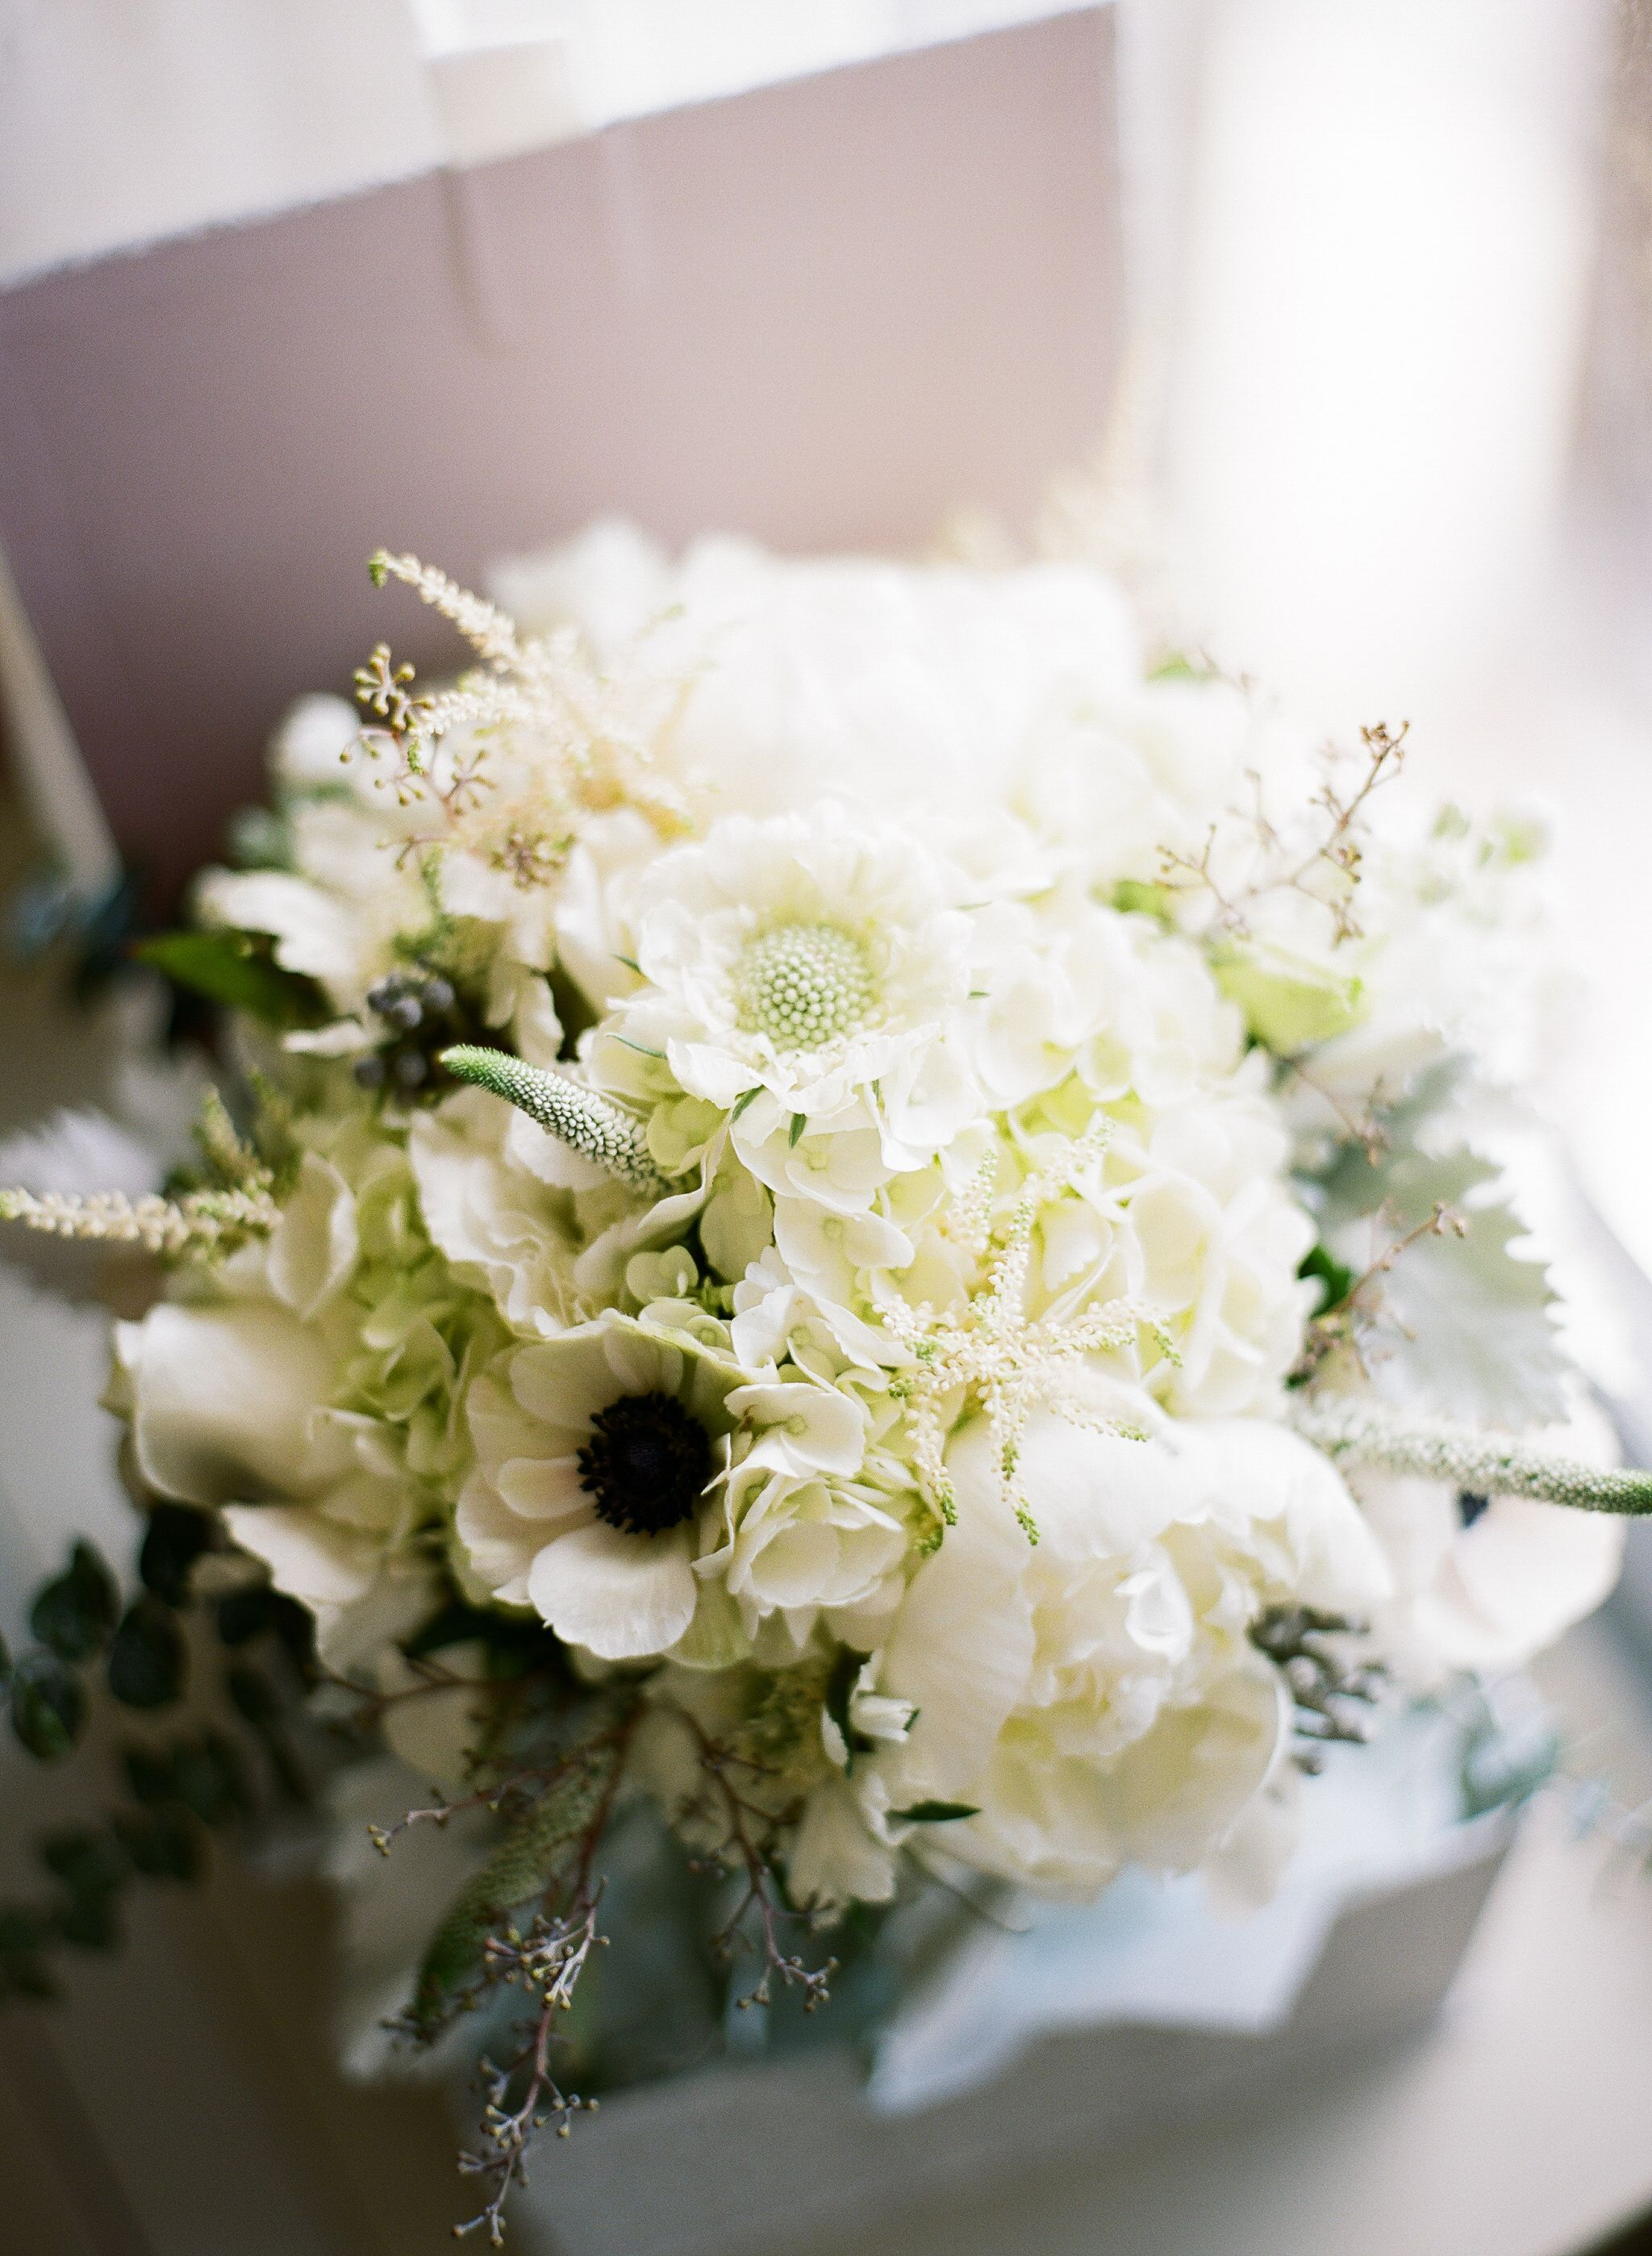 Elegant bridal bouquet of white hydrangea, white peonies, white sterling, white anenomes, dusty miller and 2 different eucalyptus in a beautiful box you get to keep! Photo by: Taylor DiVincenzo Photography #bridal #elegant #white #peonies #dustymiller #bouquet